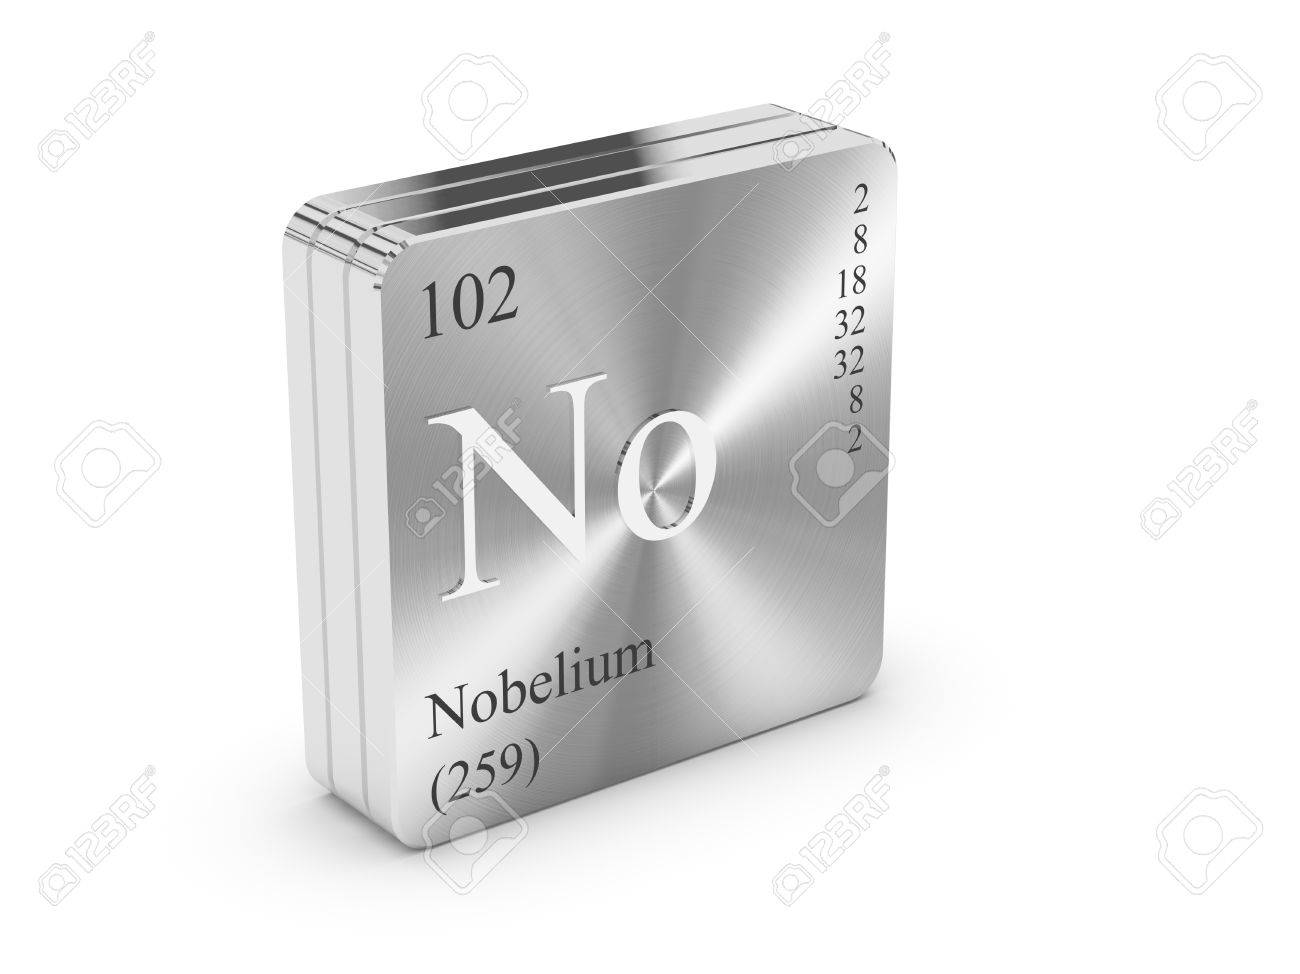 Nobelium element of the periodic table on metal steel block nobelium element of the periodic table on metal steel block stock photo 12767361 gamestrikefo Image collections